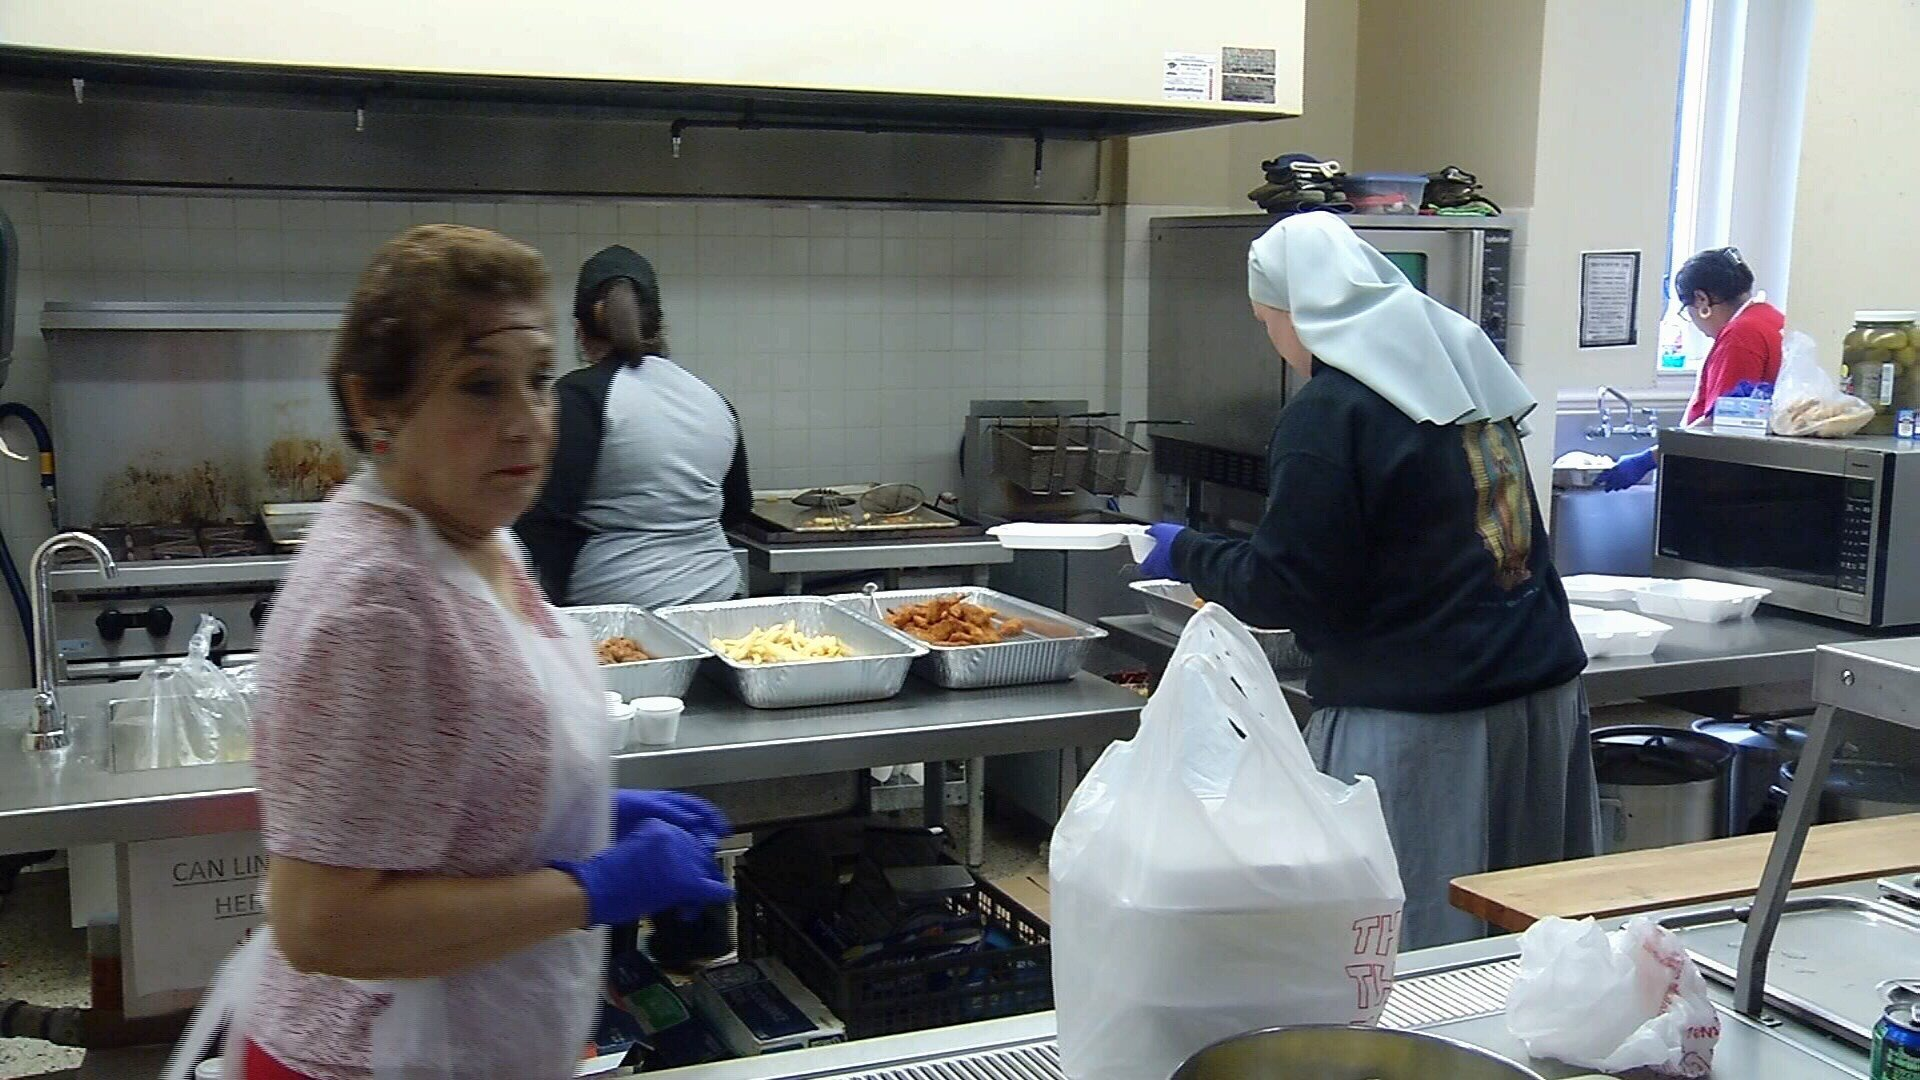 Christ the King Catholic Church is holding a Fish Fry lunch and dinner on Ash Wednesday.